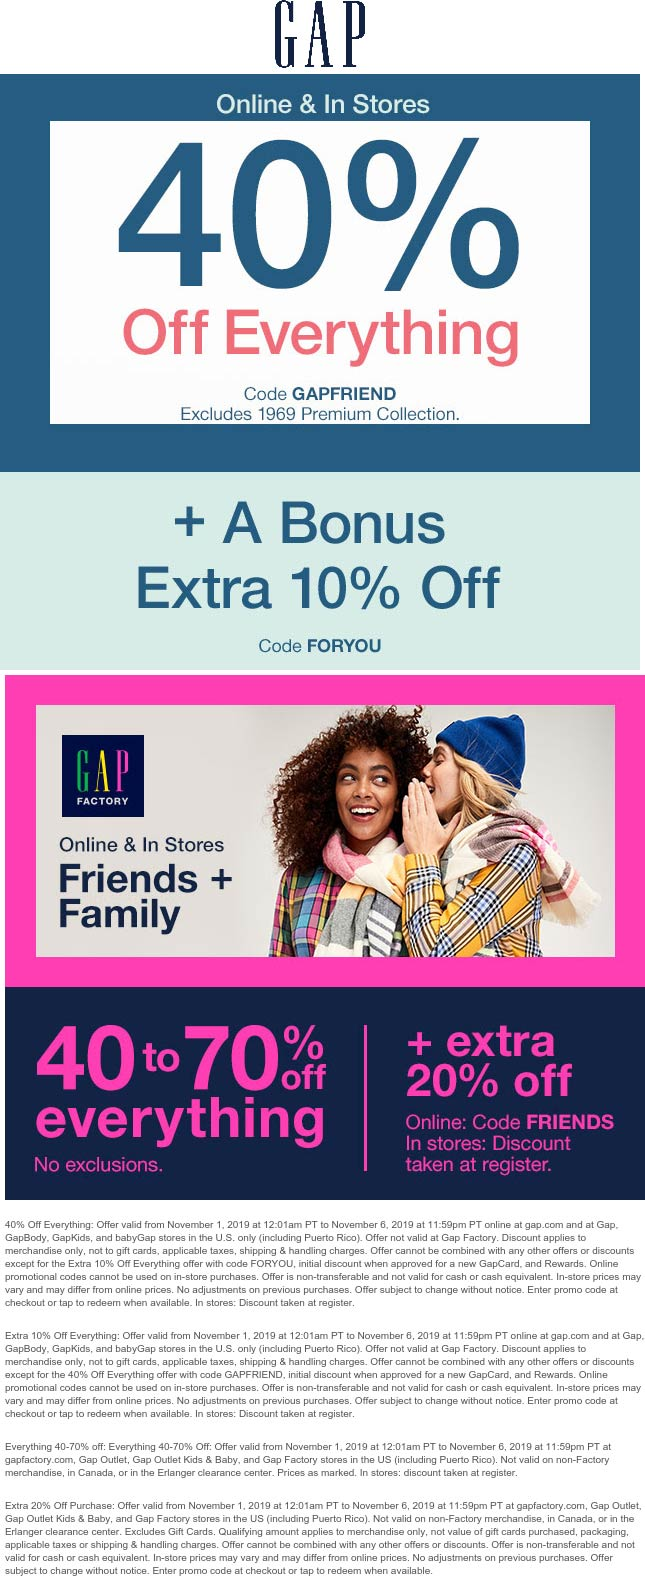 Gap Coupon November 2019 40% off everything at Gap & factory locations, or online via promo code GAPFRIEND